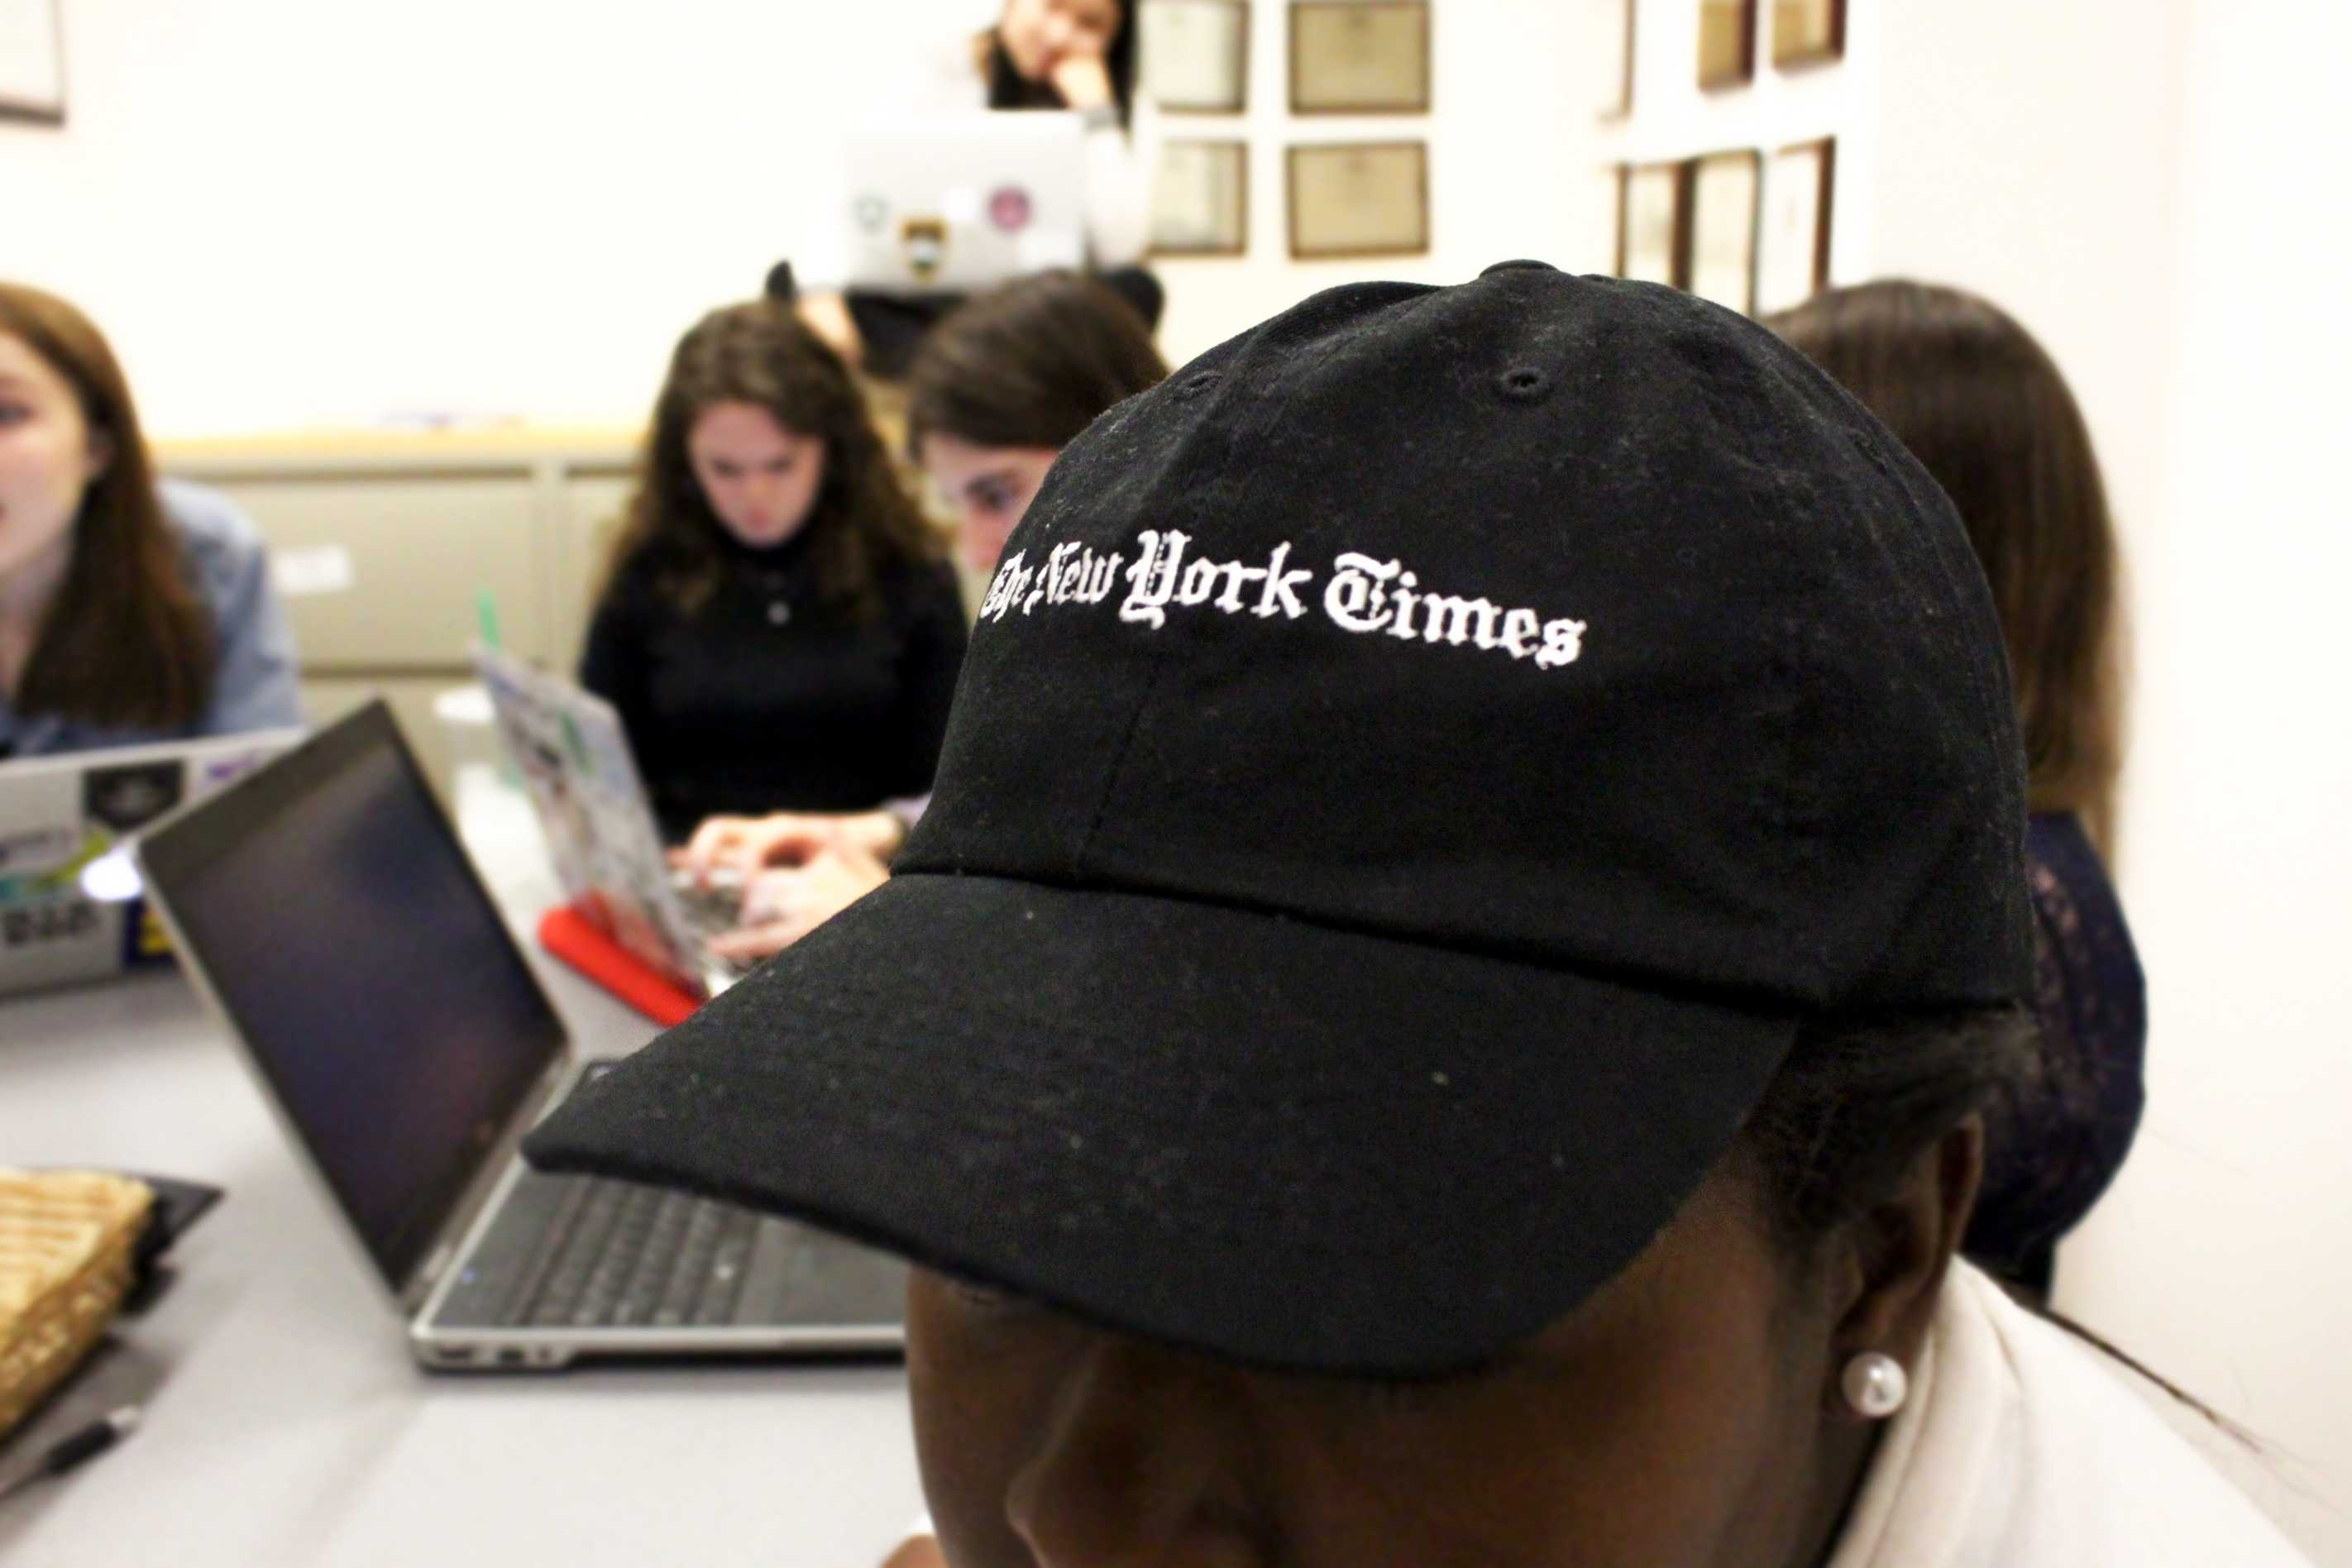 Last week, President Donald Trump barred the New York Times alongside other major news outlets (including CNN and Politico) from attending White House briefings. Journalism students worry about what this means for the future.